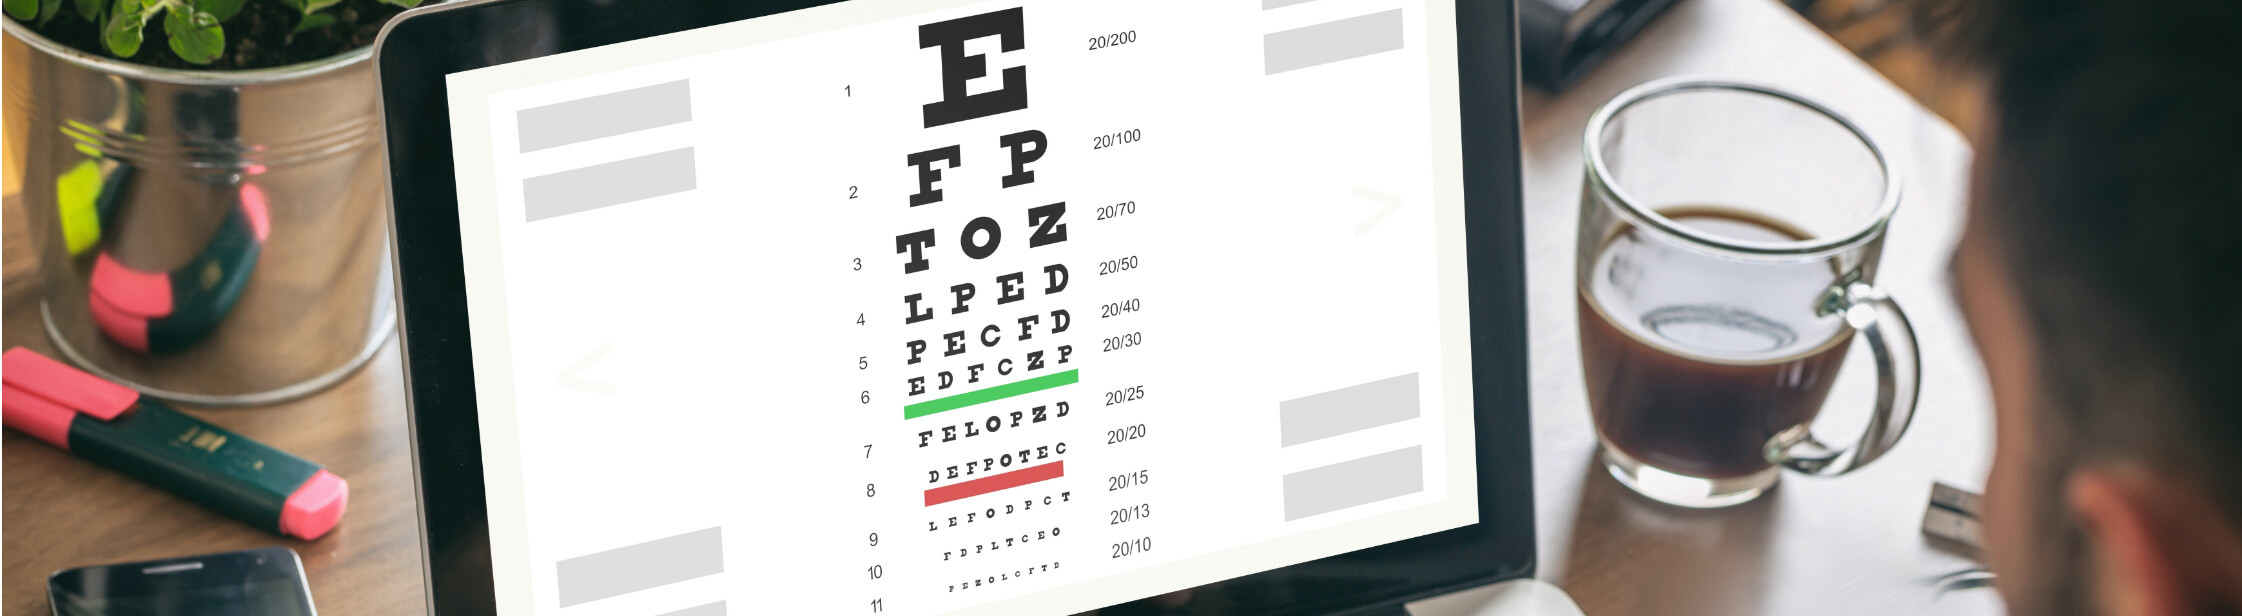 Eye test chart on a computer screen